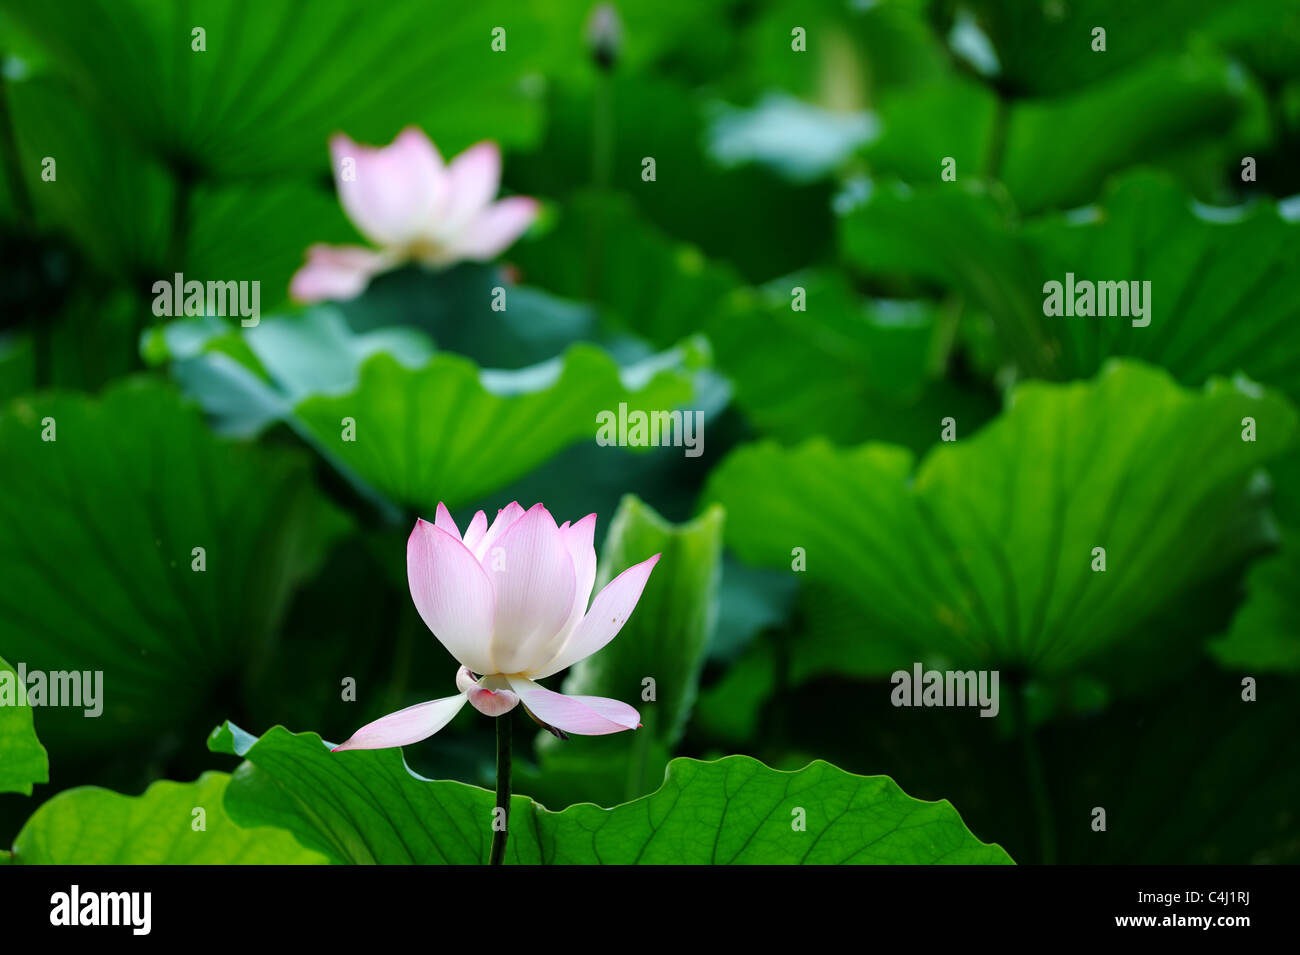 Lotus flower blooming in the pool stock photo 37275942 alamy lotus flower blooming in the pool izmirmasajfo